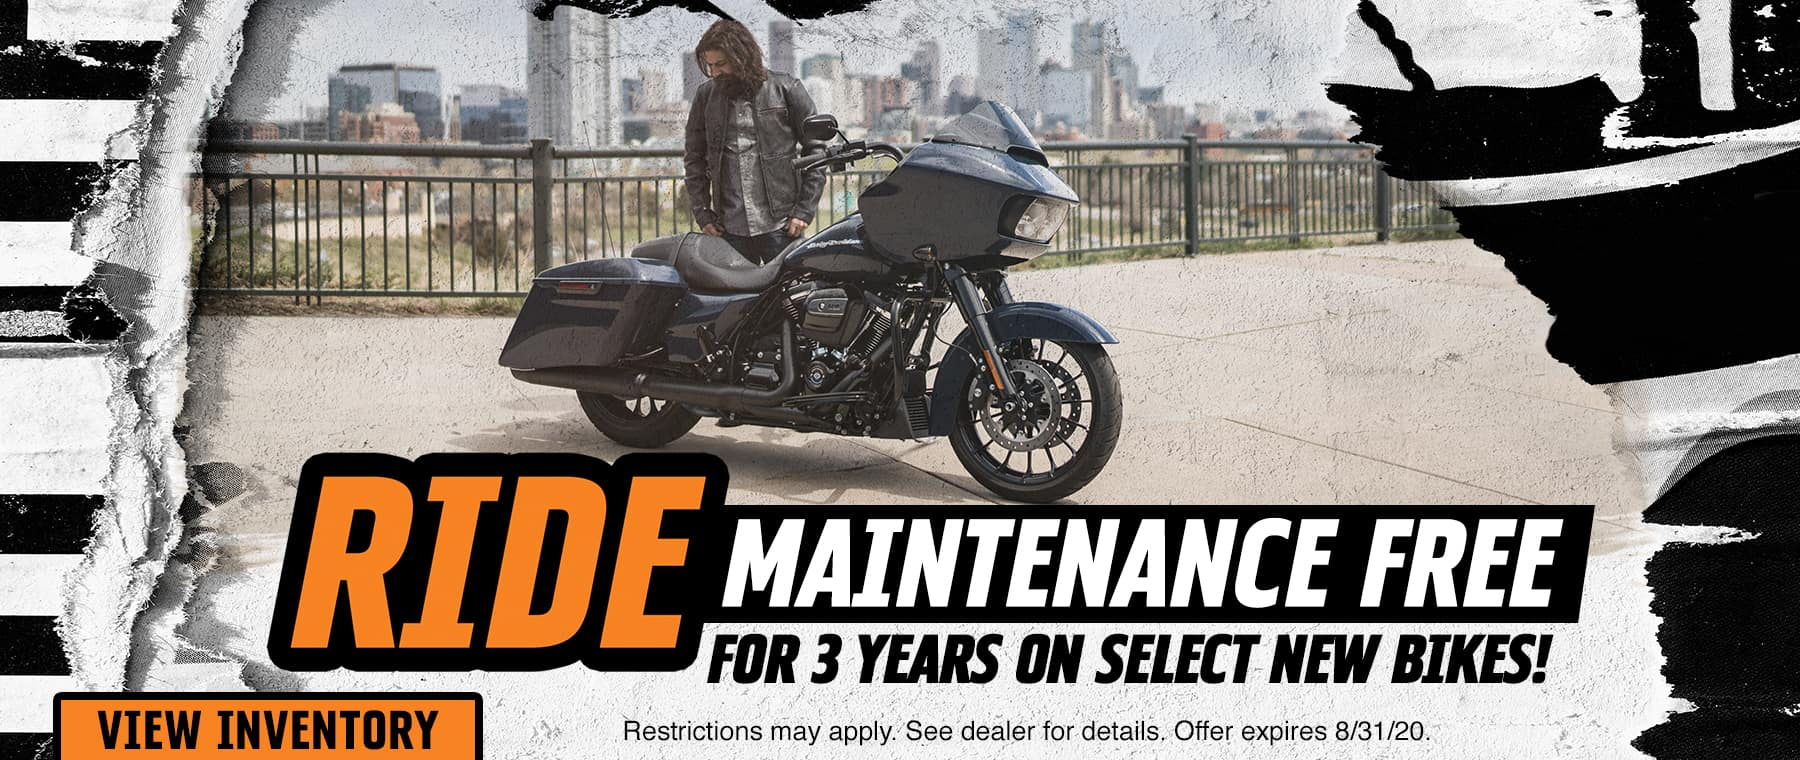 Ride Maintenance Free For 3 Years on Select New Bikes!